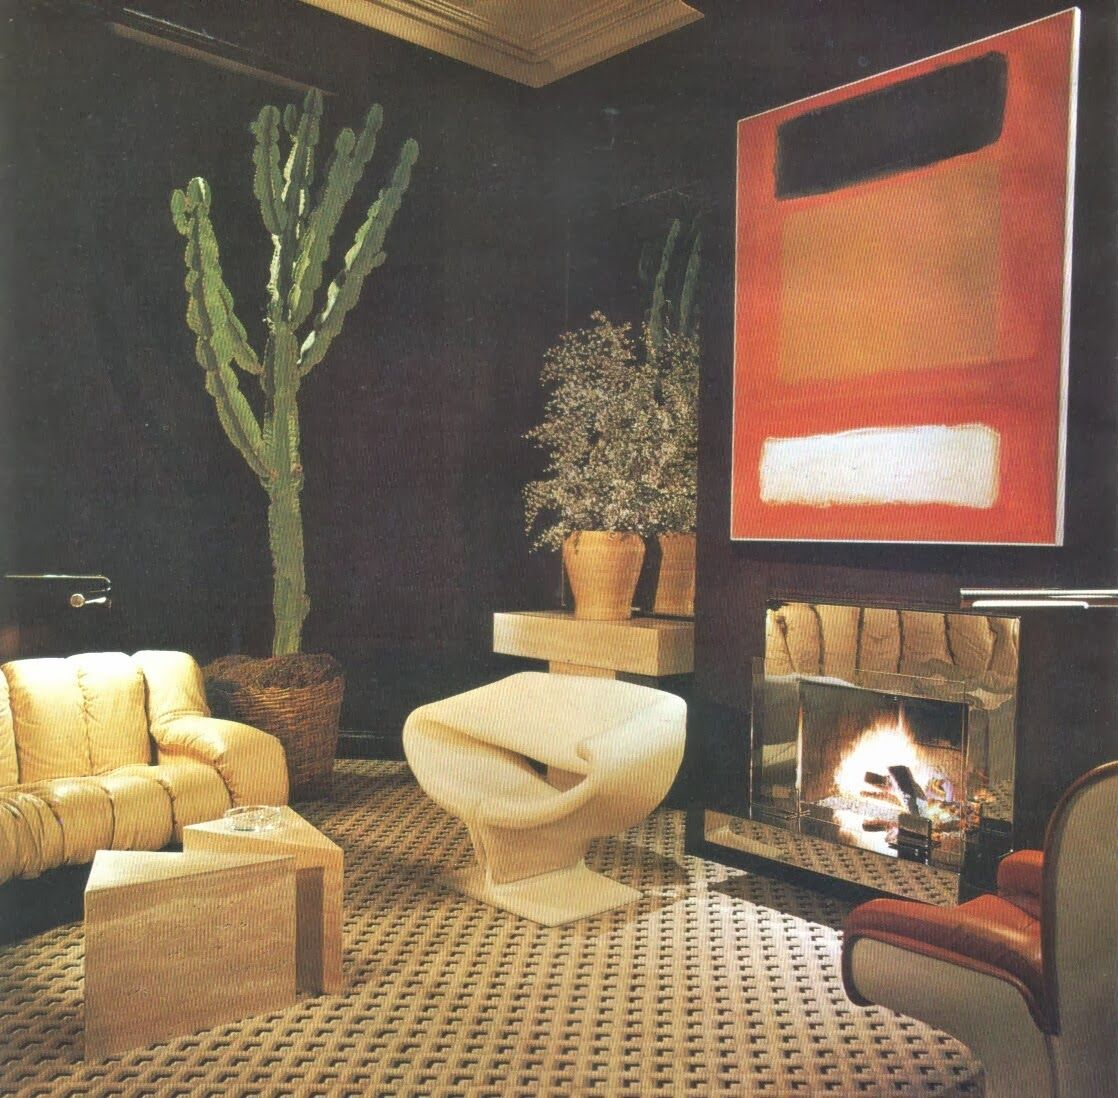 Eclectic living 70s style | Billy Gaylord; Architectural Digest 1975. Photo by  Russell MacMasters.